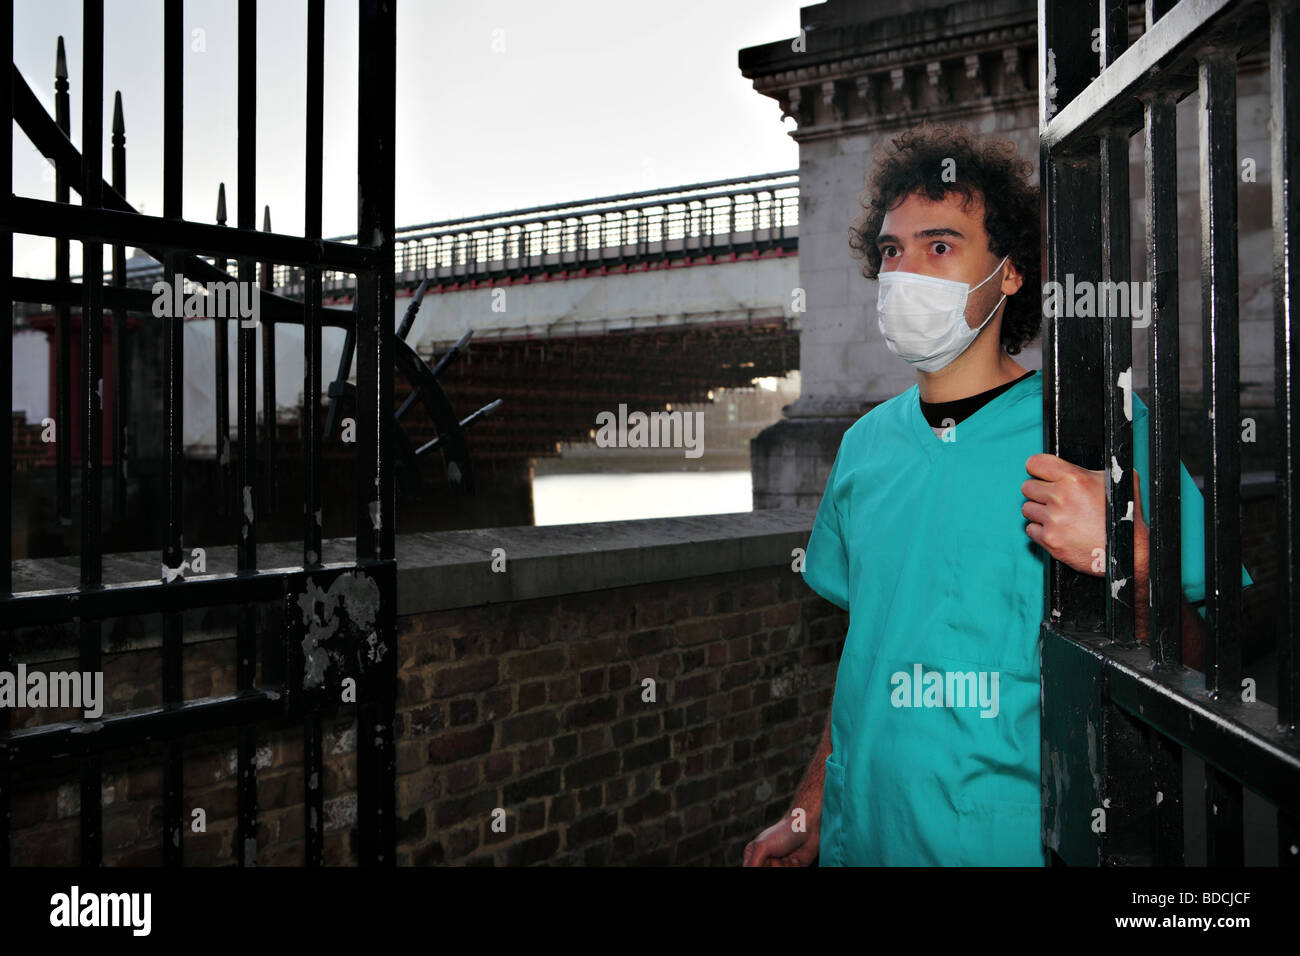 Young man with a surgical face mask looks scared nearby the Blackfriars Bridge in London. - Stock Image